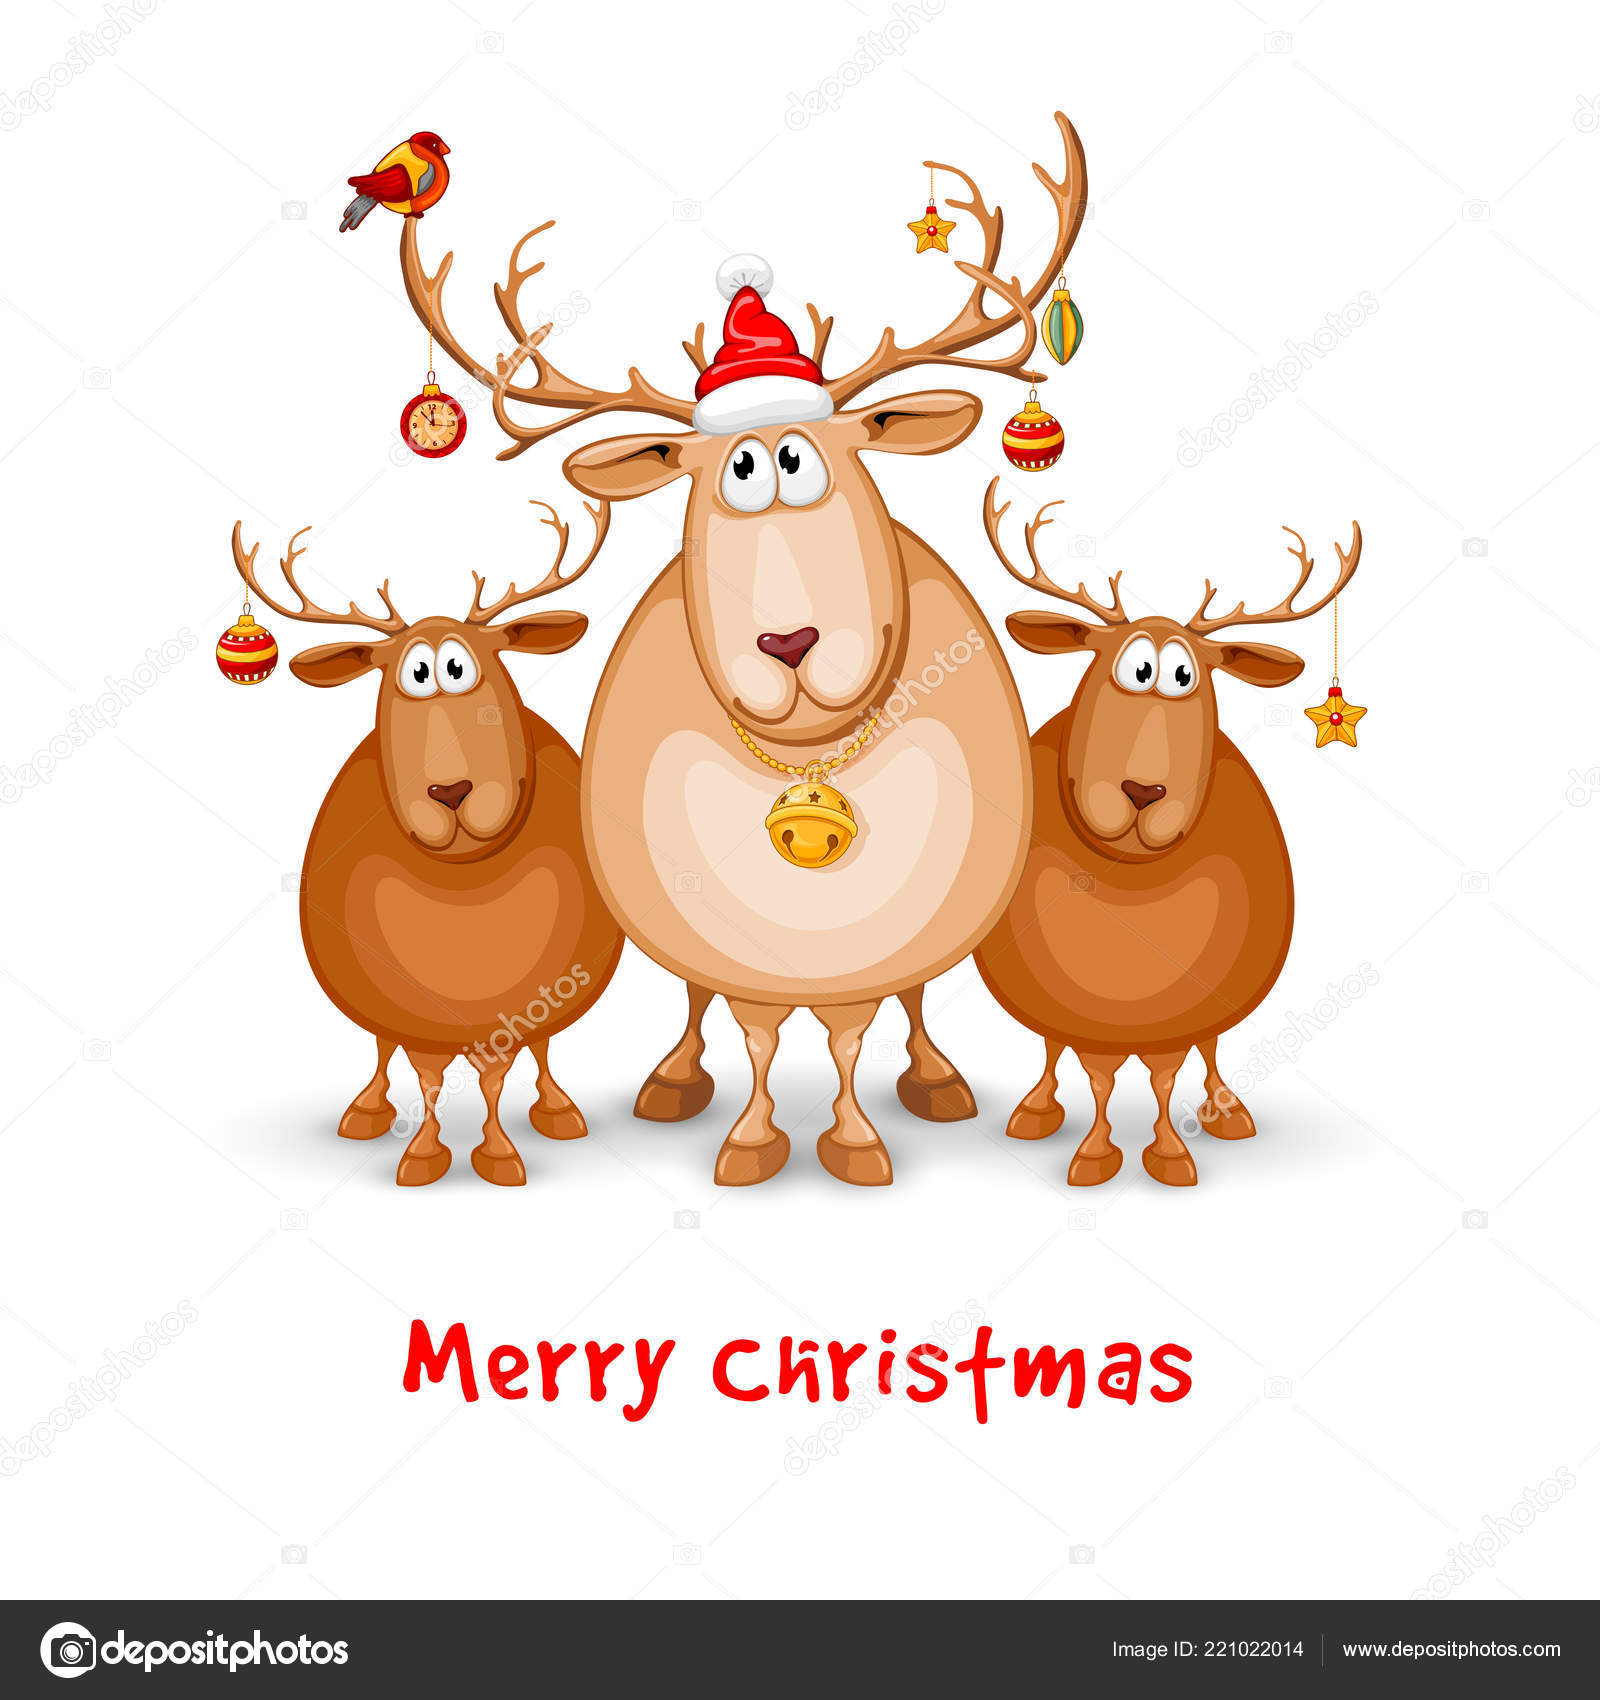 merry christmas happy new year greeting design cartoon funny reindeers stock vector